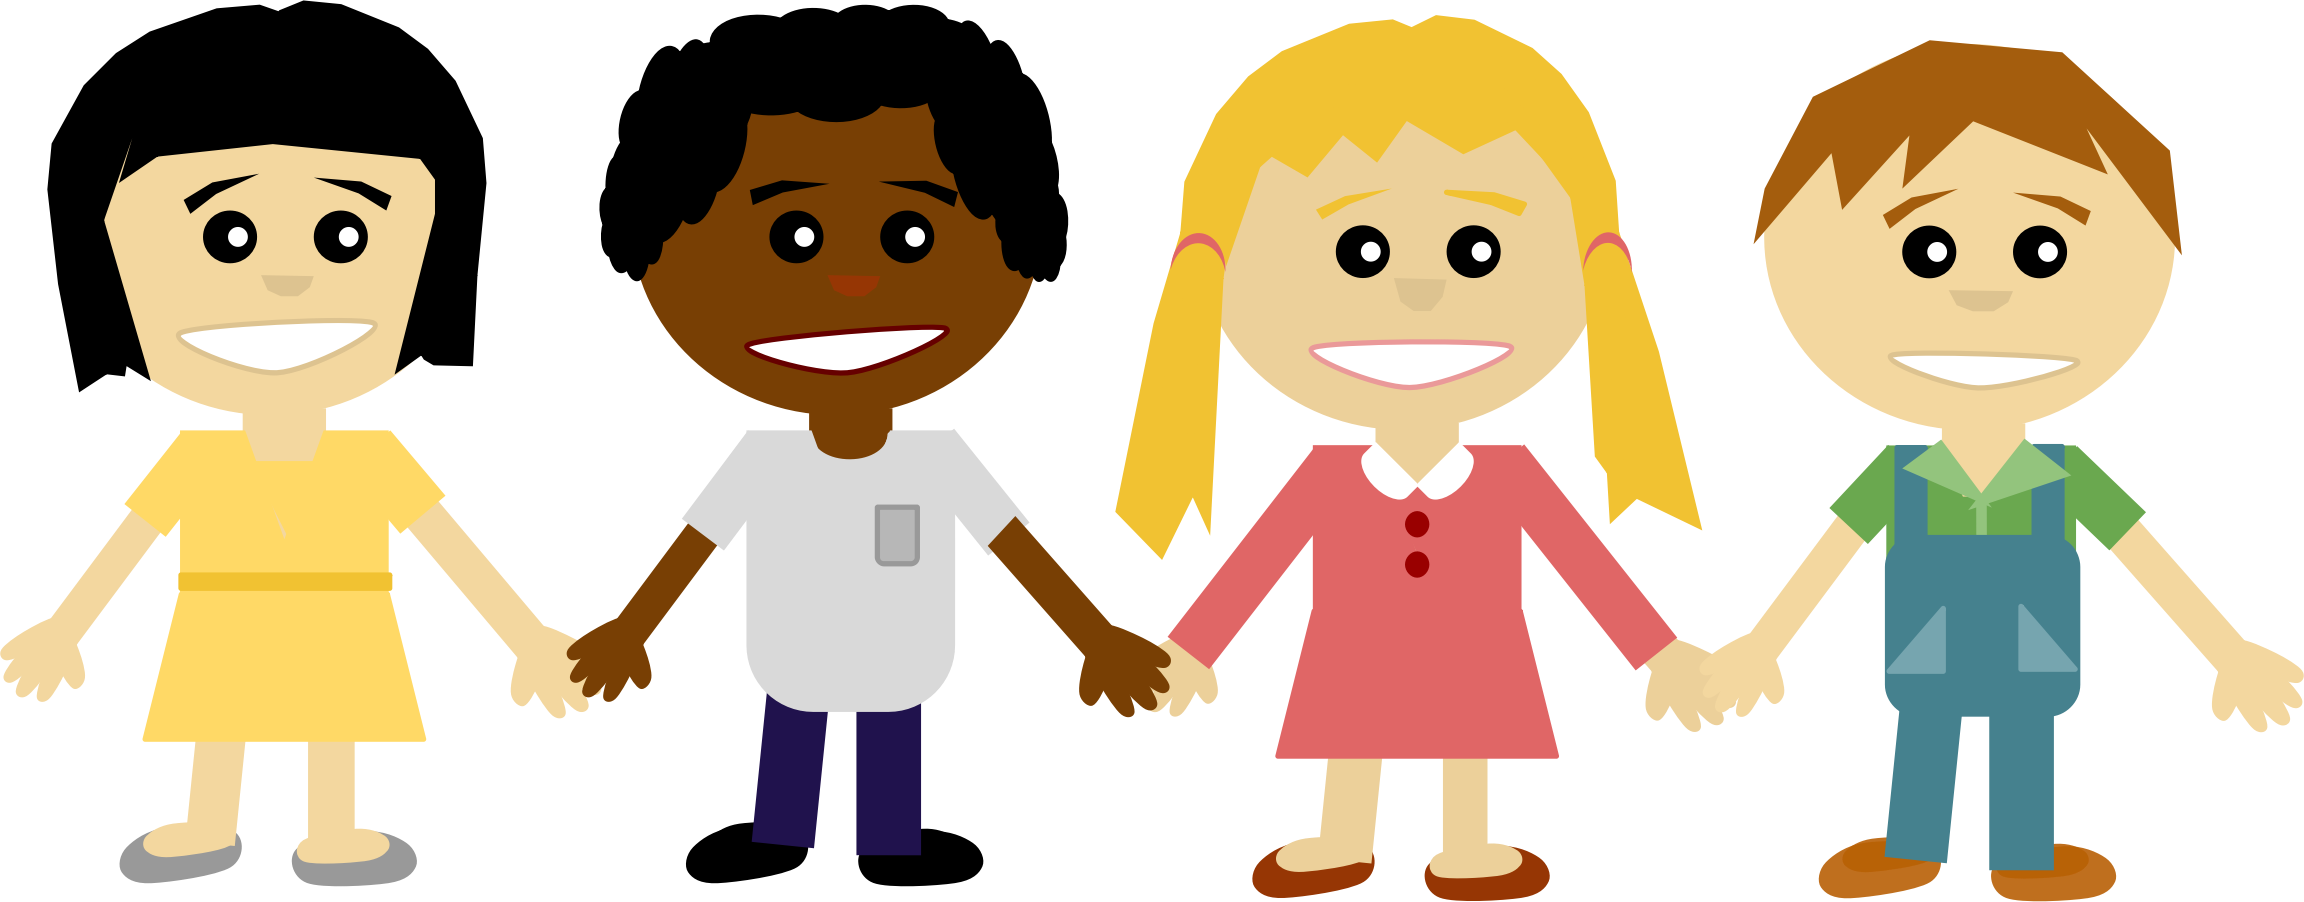 Hand holding out money clipart image library download Image for Free Children Holding Hands People High Resolution Clip ... image library download